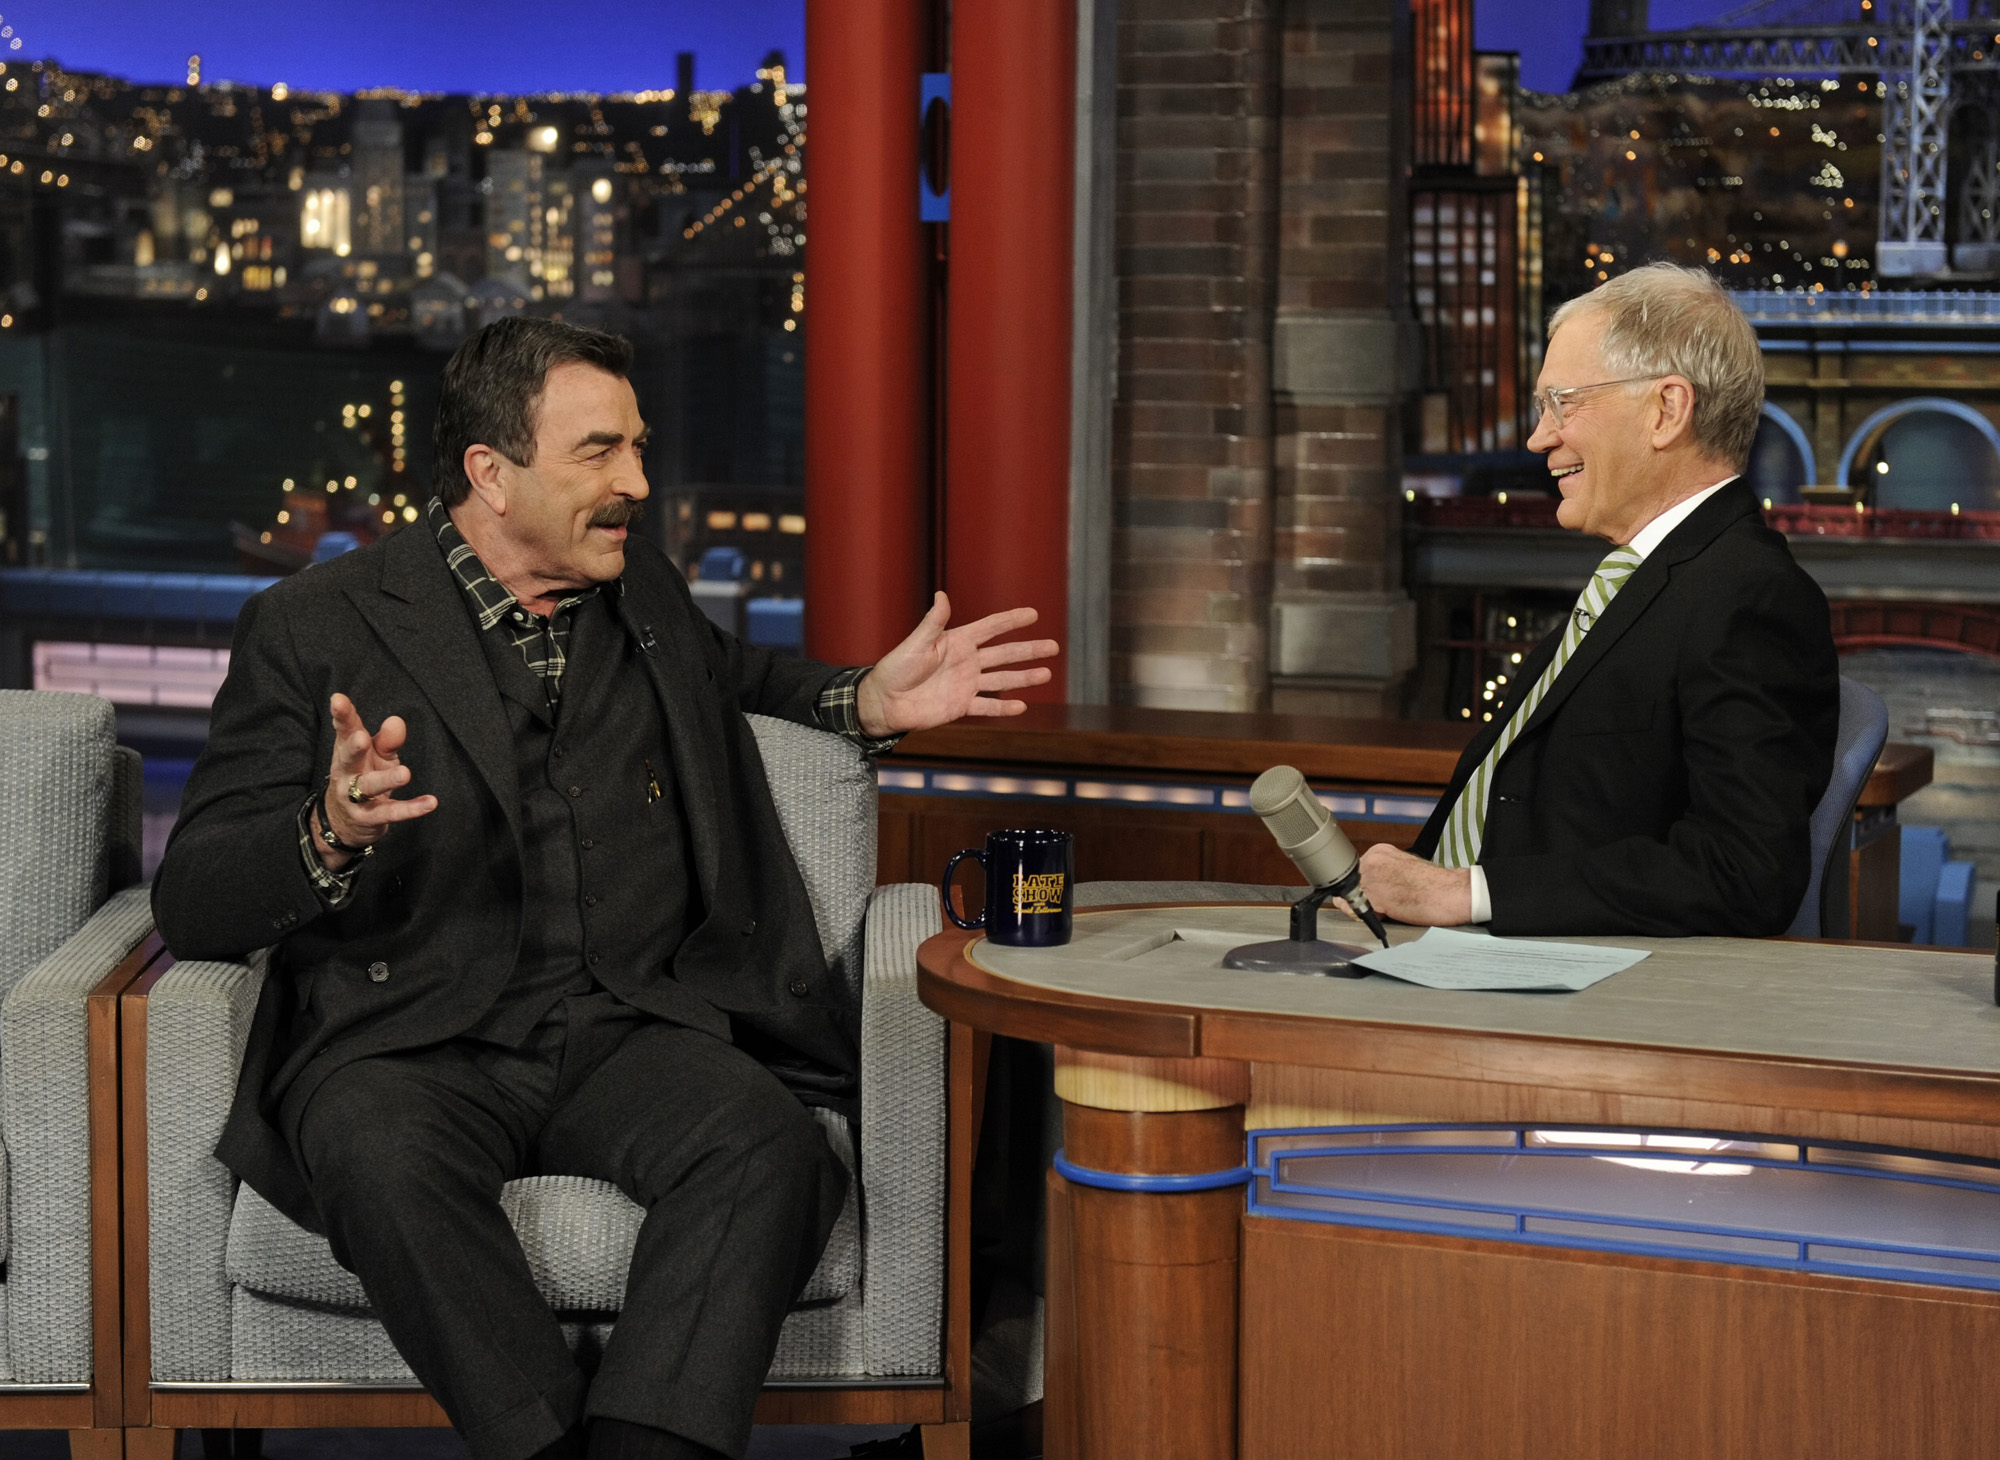 24. Tom Selleck auditioned with Steven Spielberg and George Lucas for the lead in